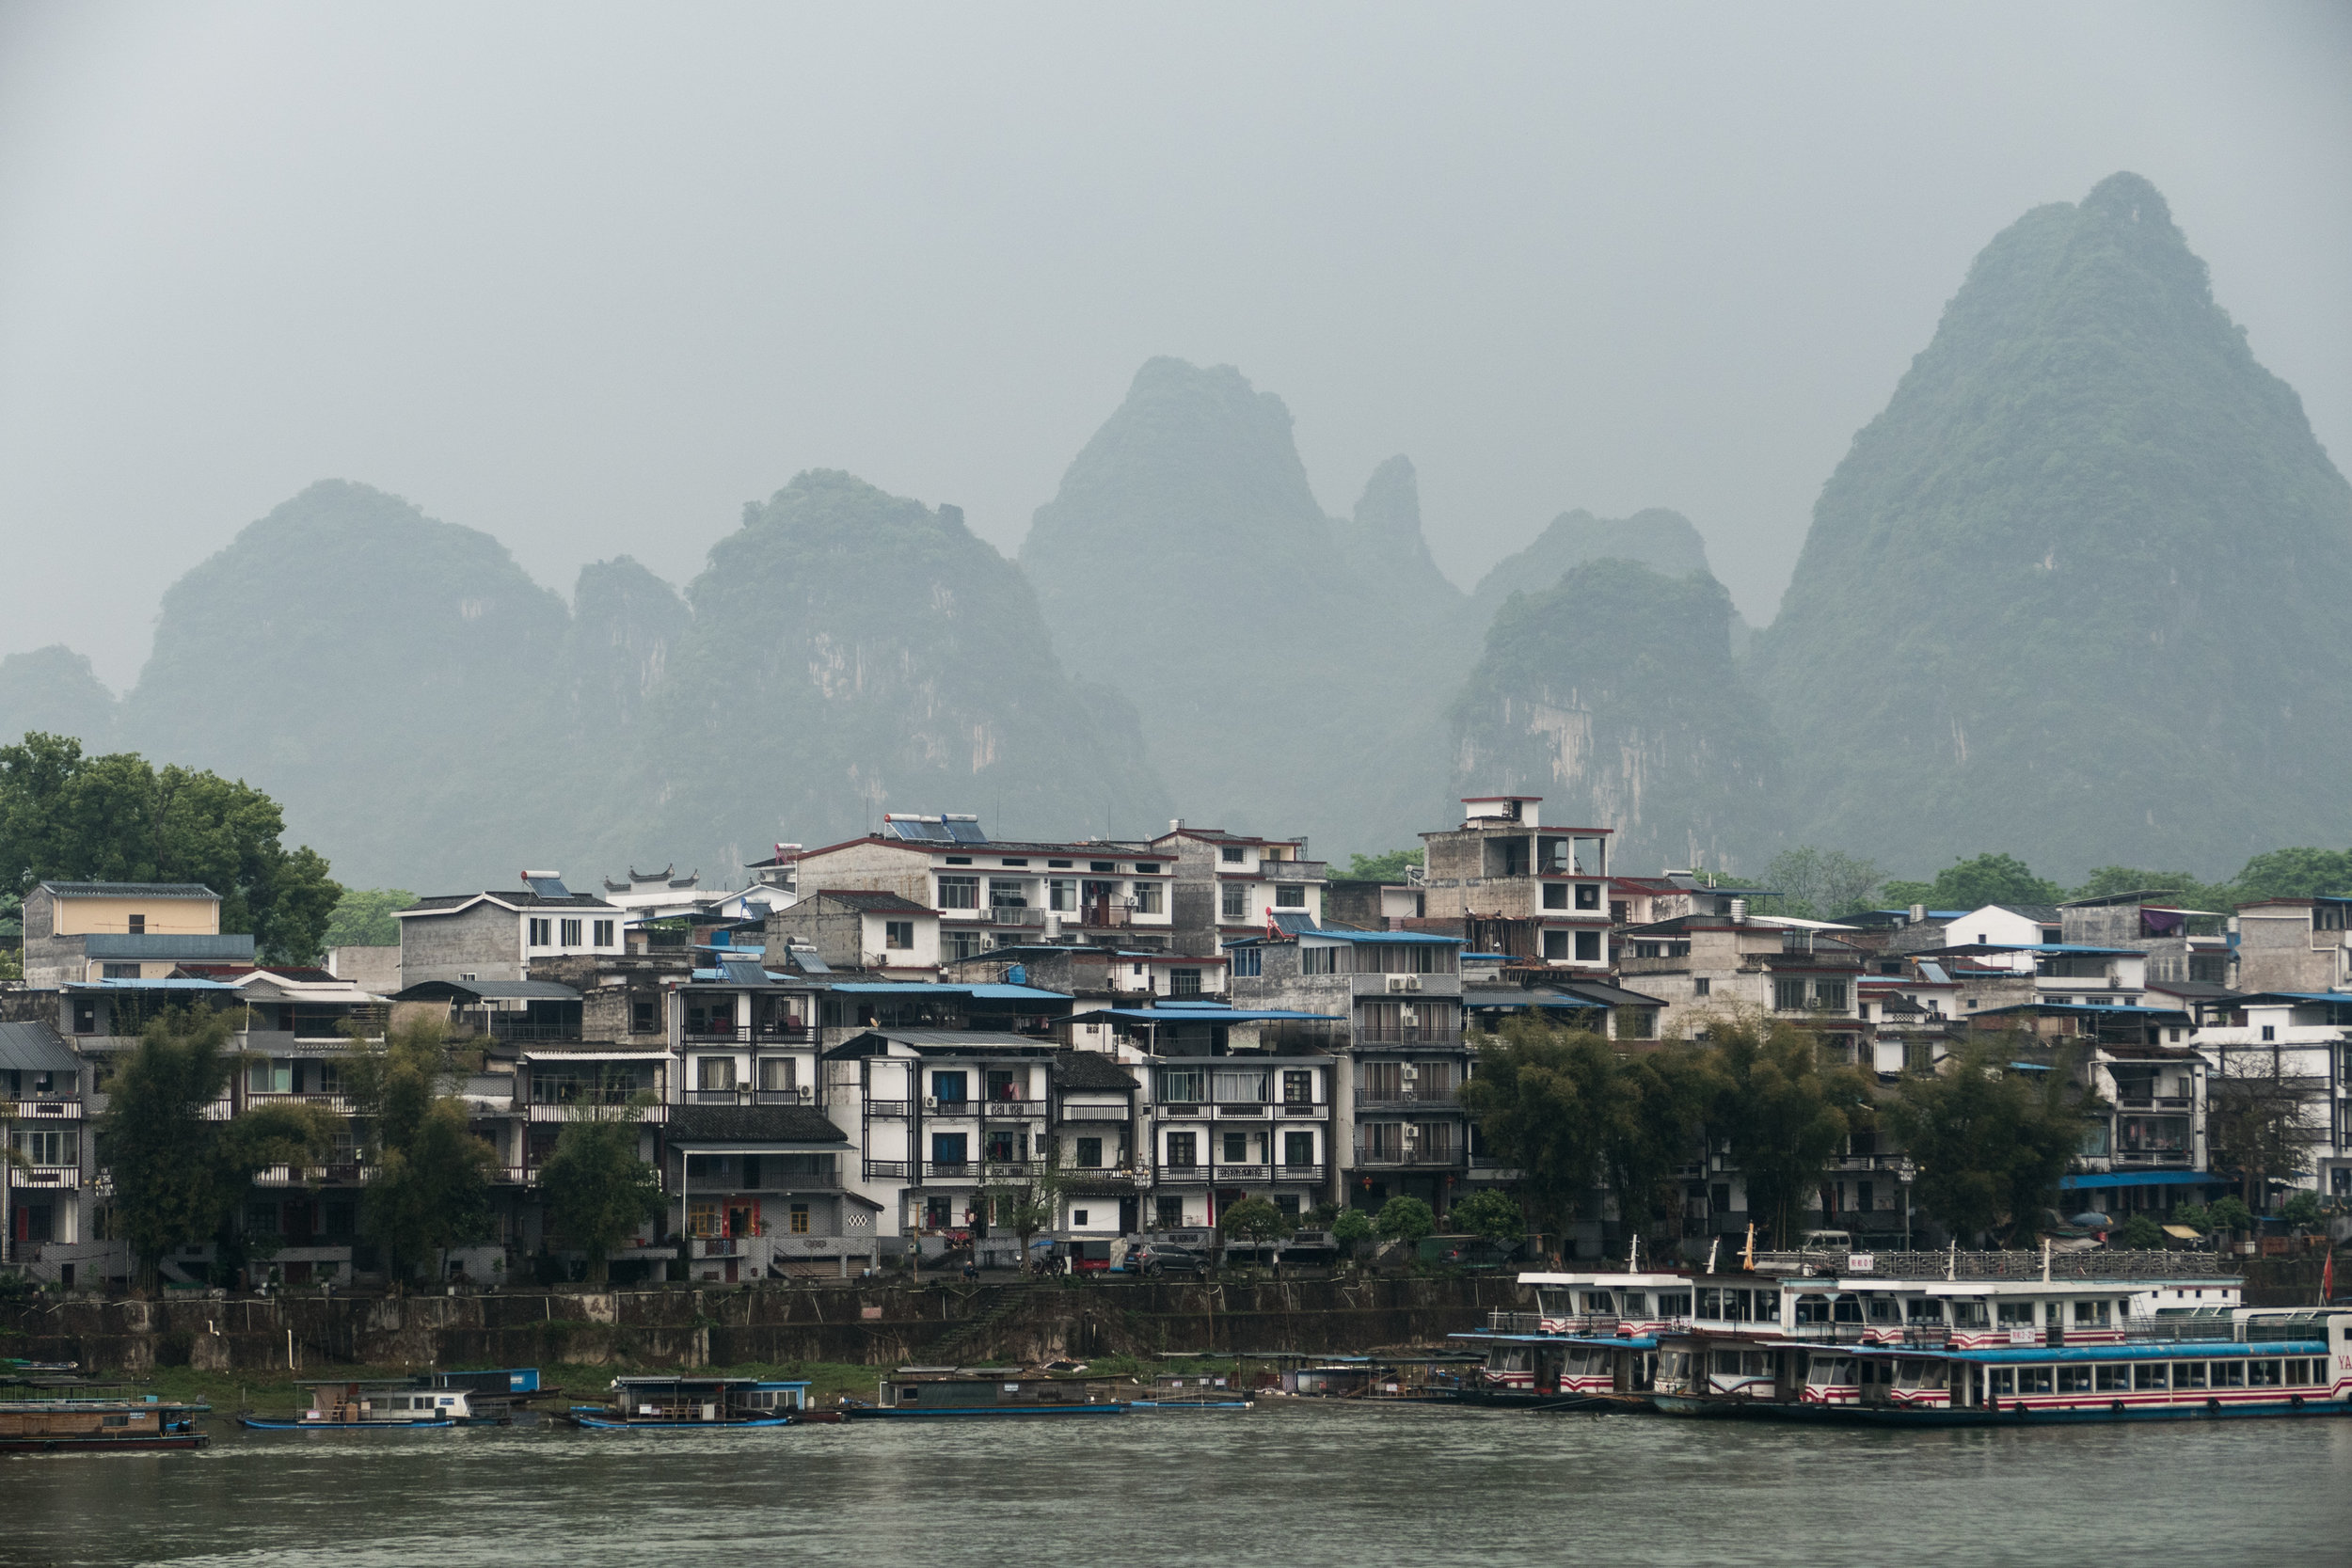 Backdrop of karsts over Yangshuo